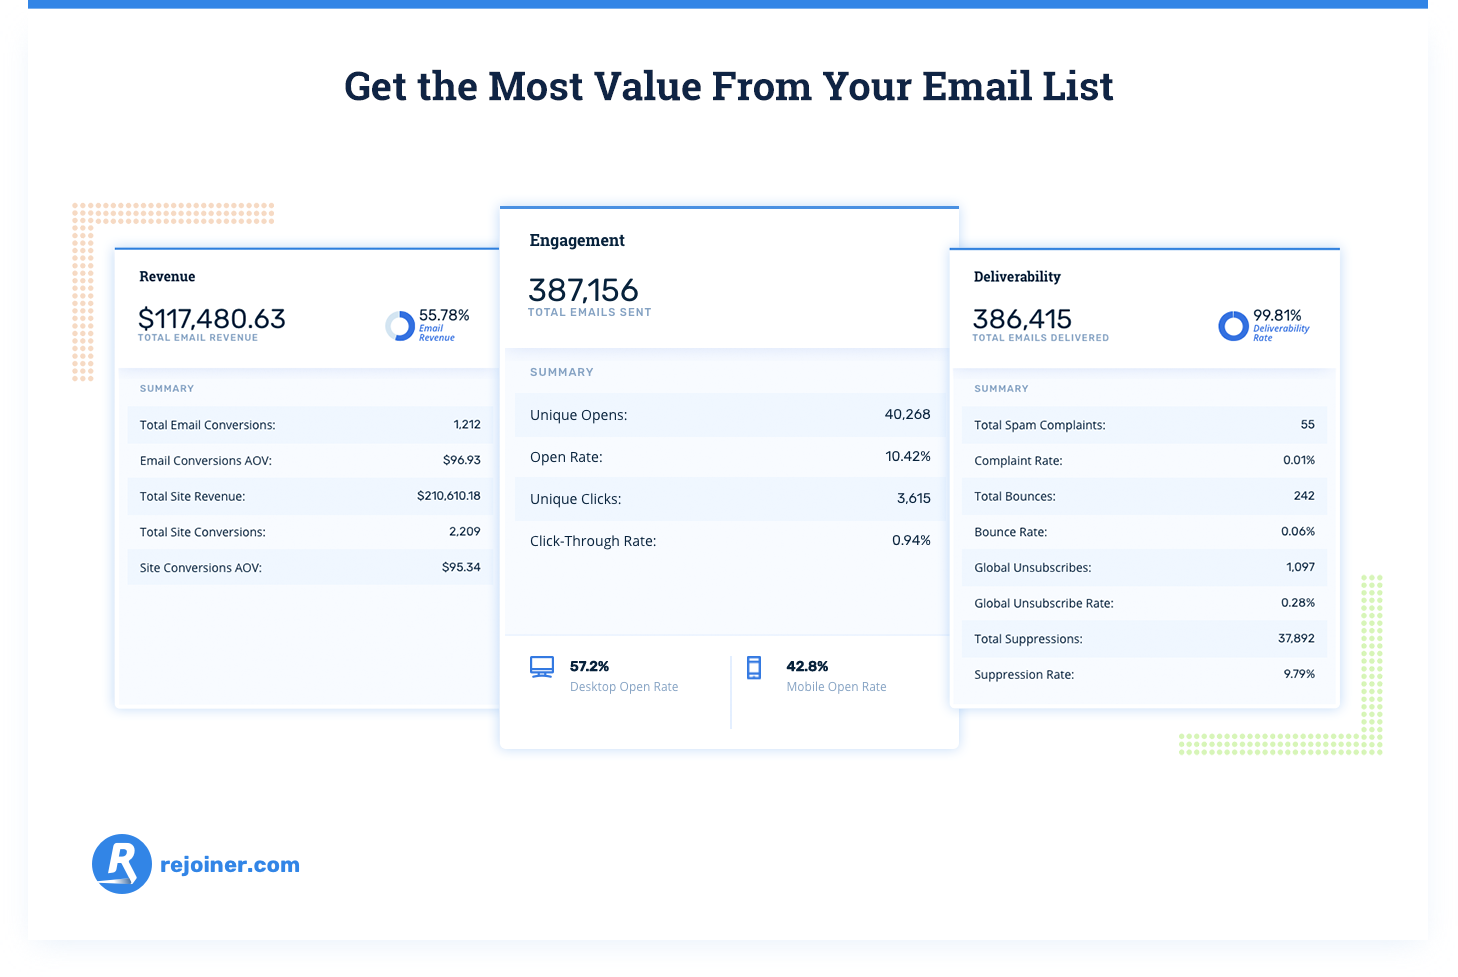 get the most value from your email list